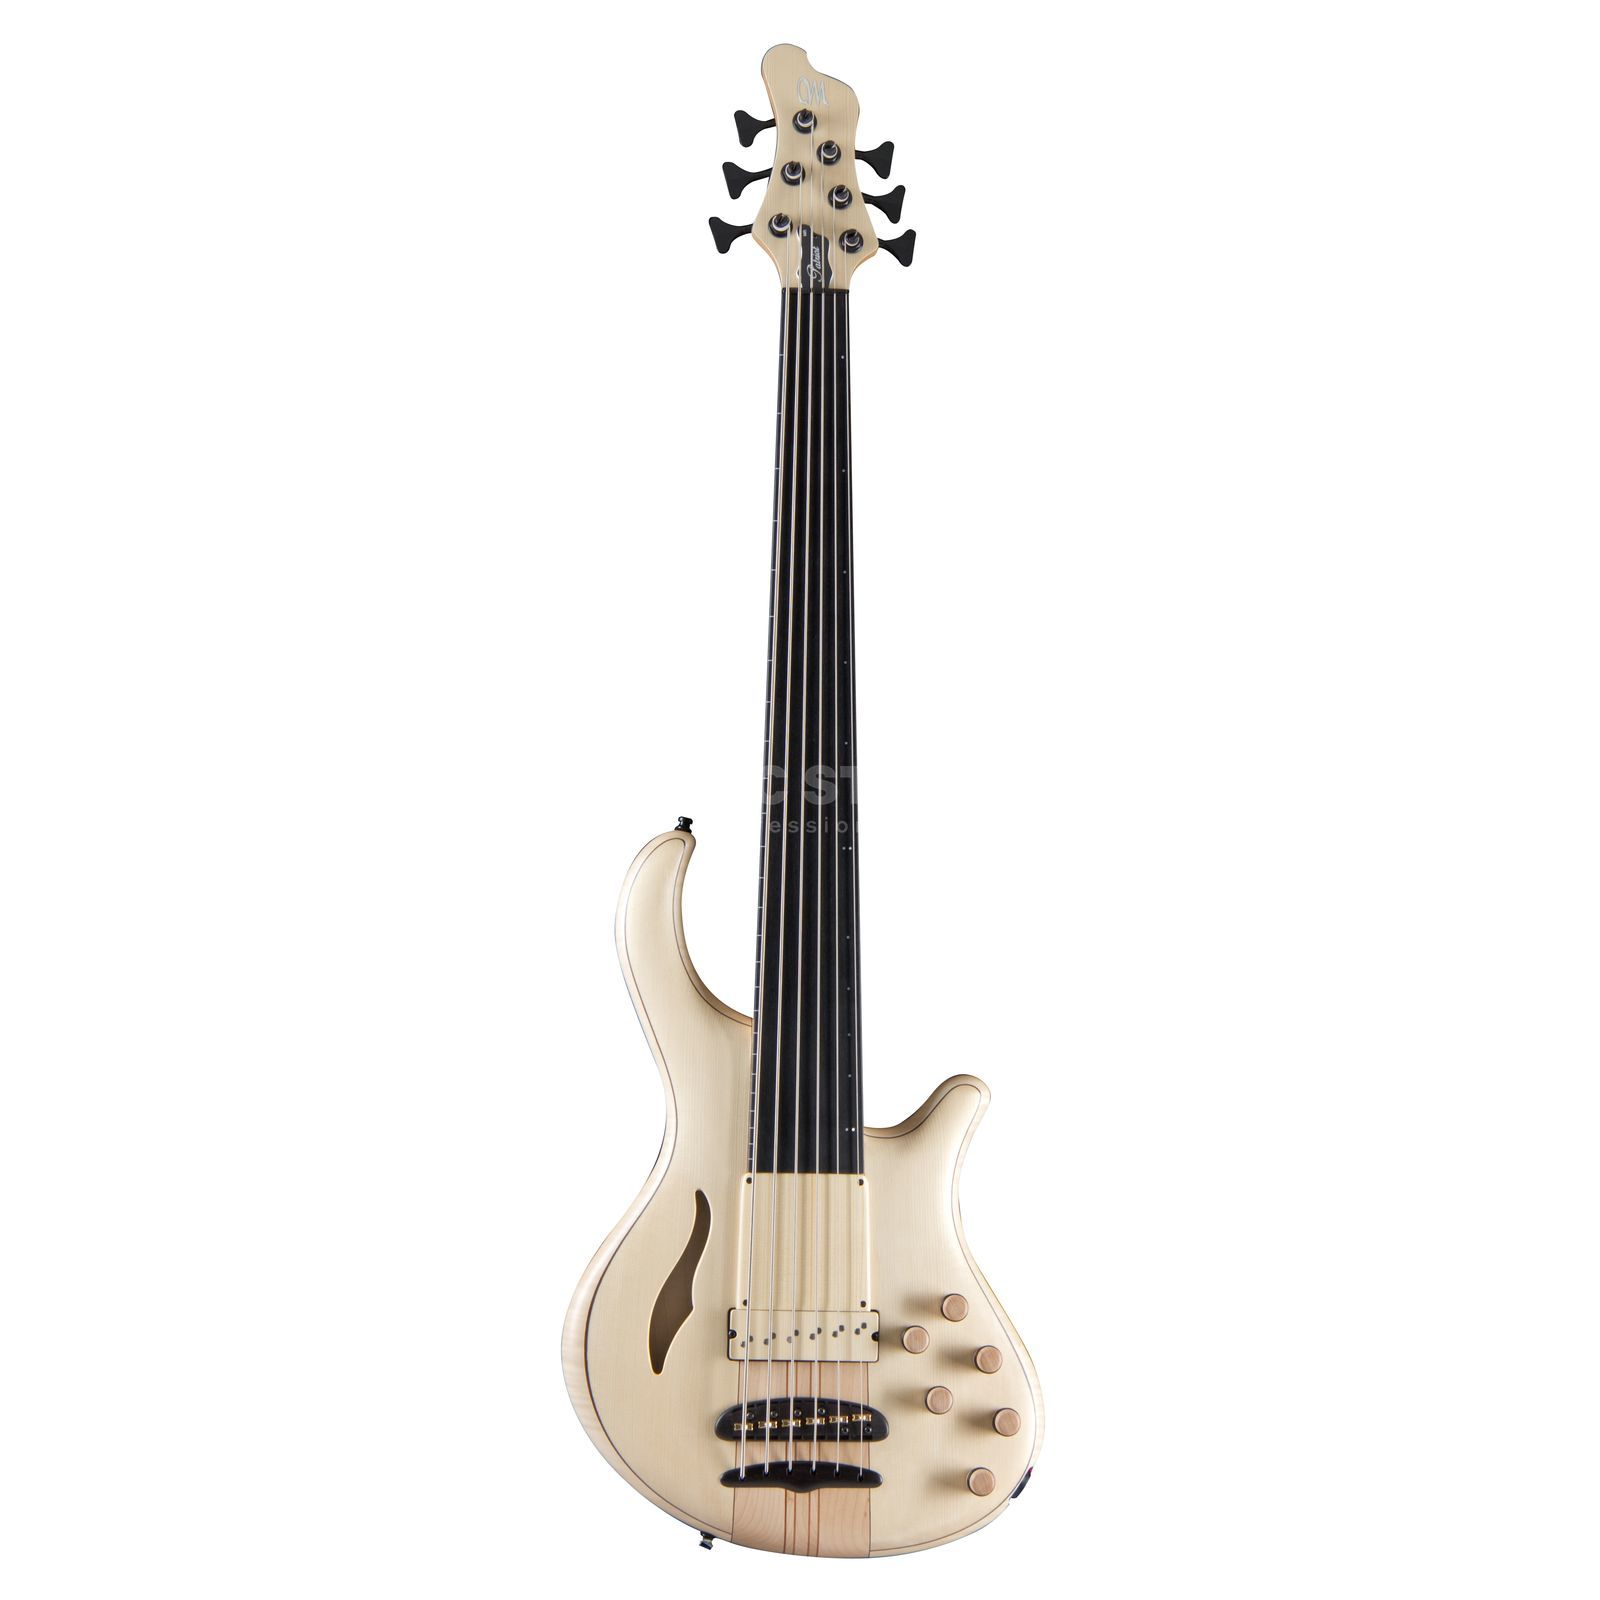 Mayones AS Patriot 6 MR Fretless NT CS Natural Zdjęcie produktu